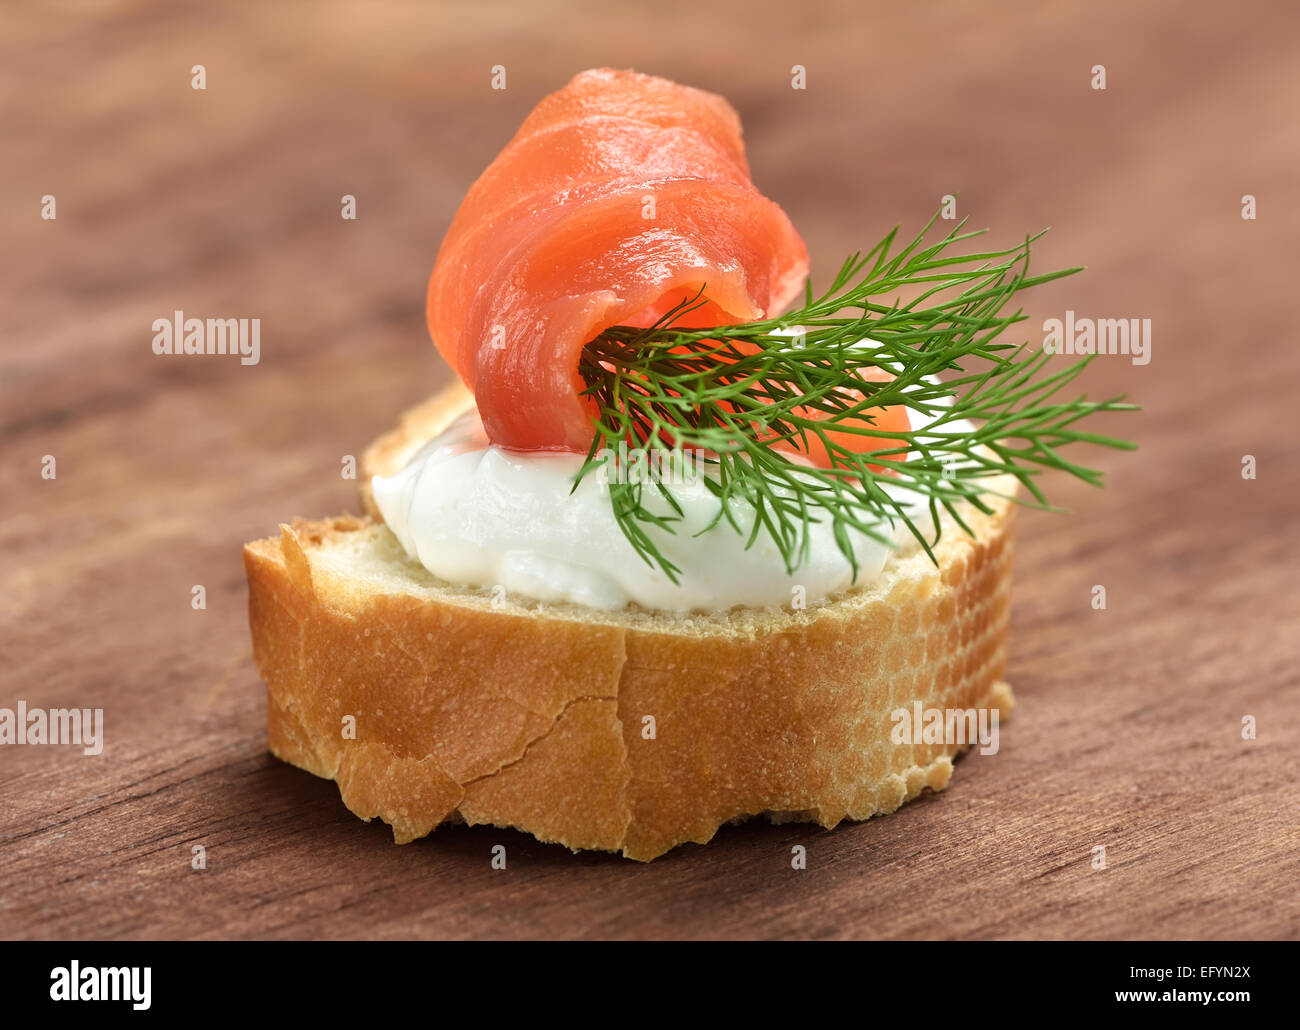 Appetizer with salmon and dill, close up view - Stock Image